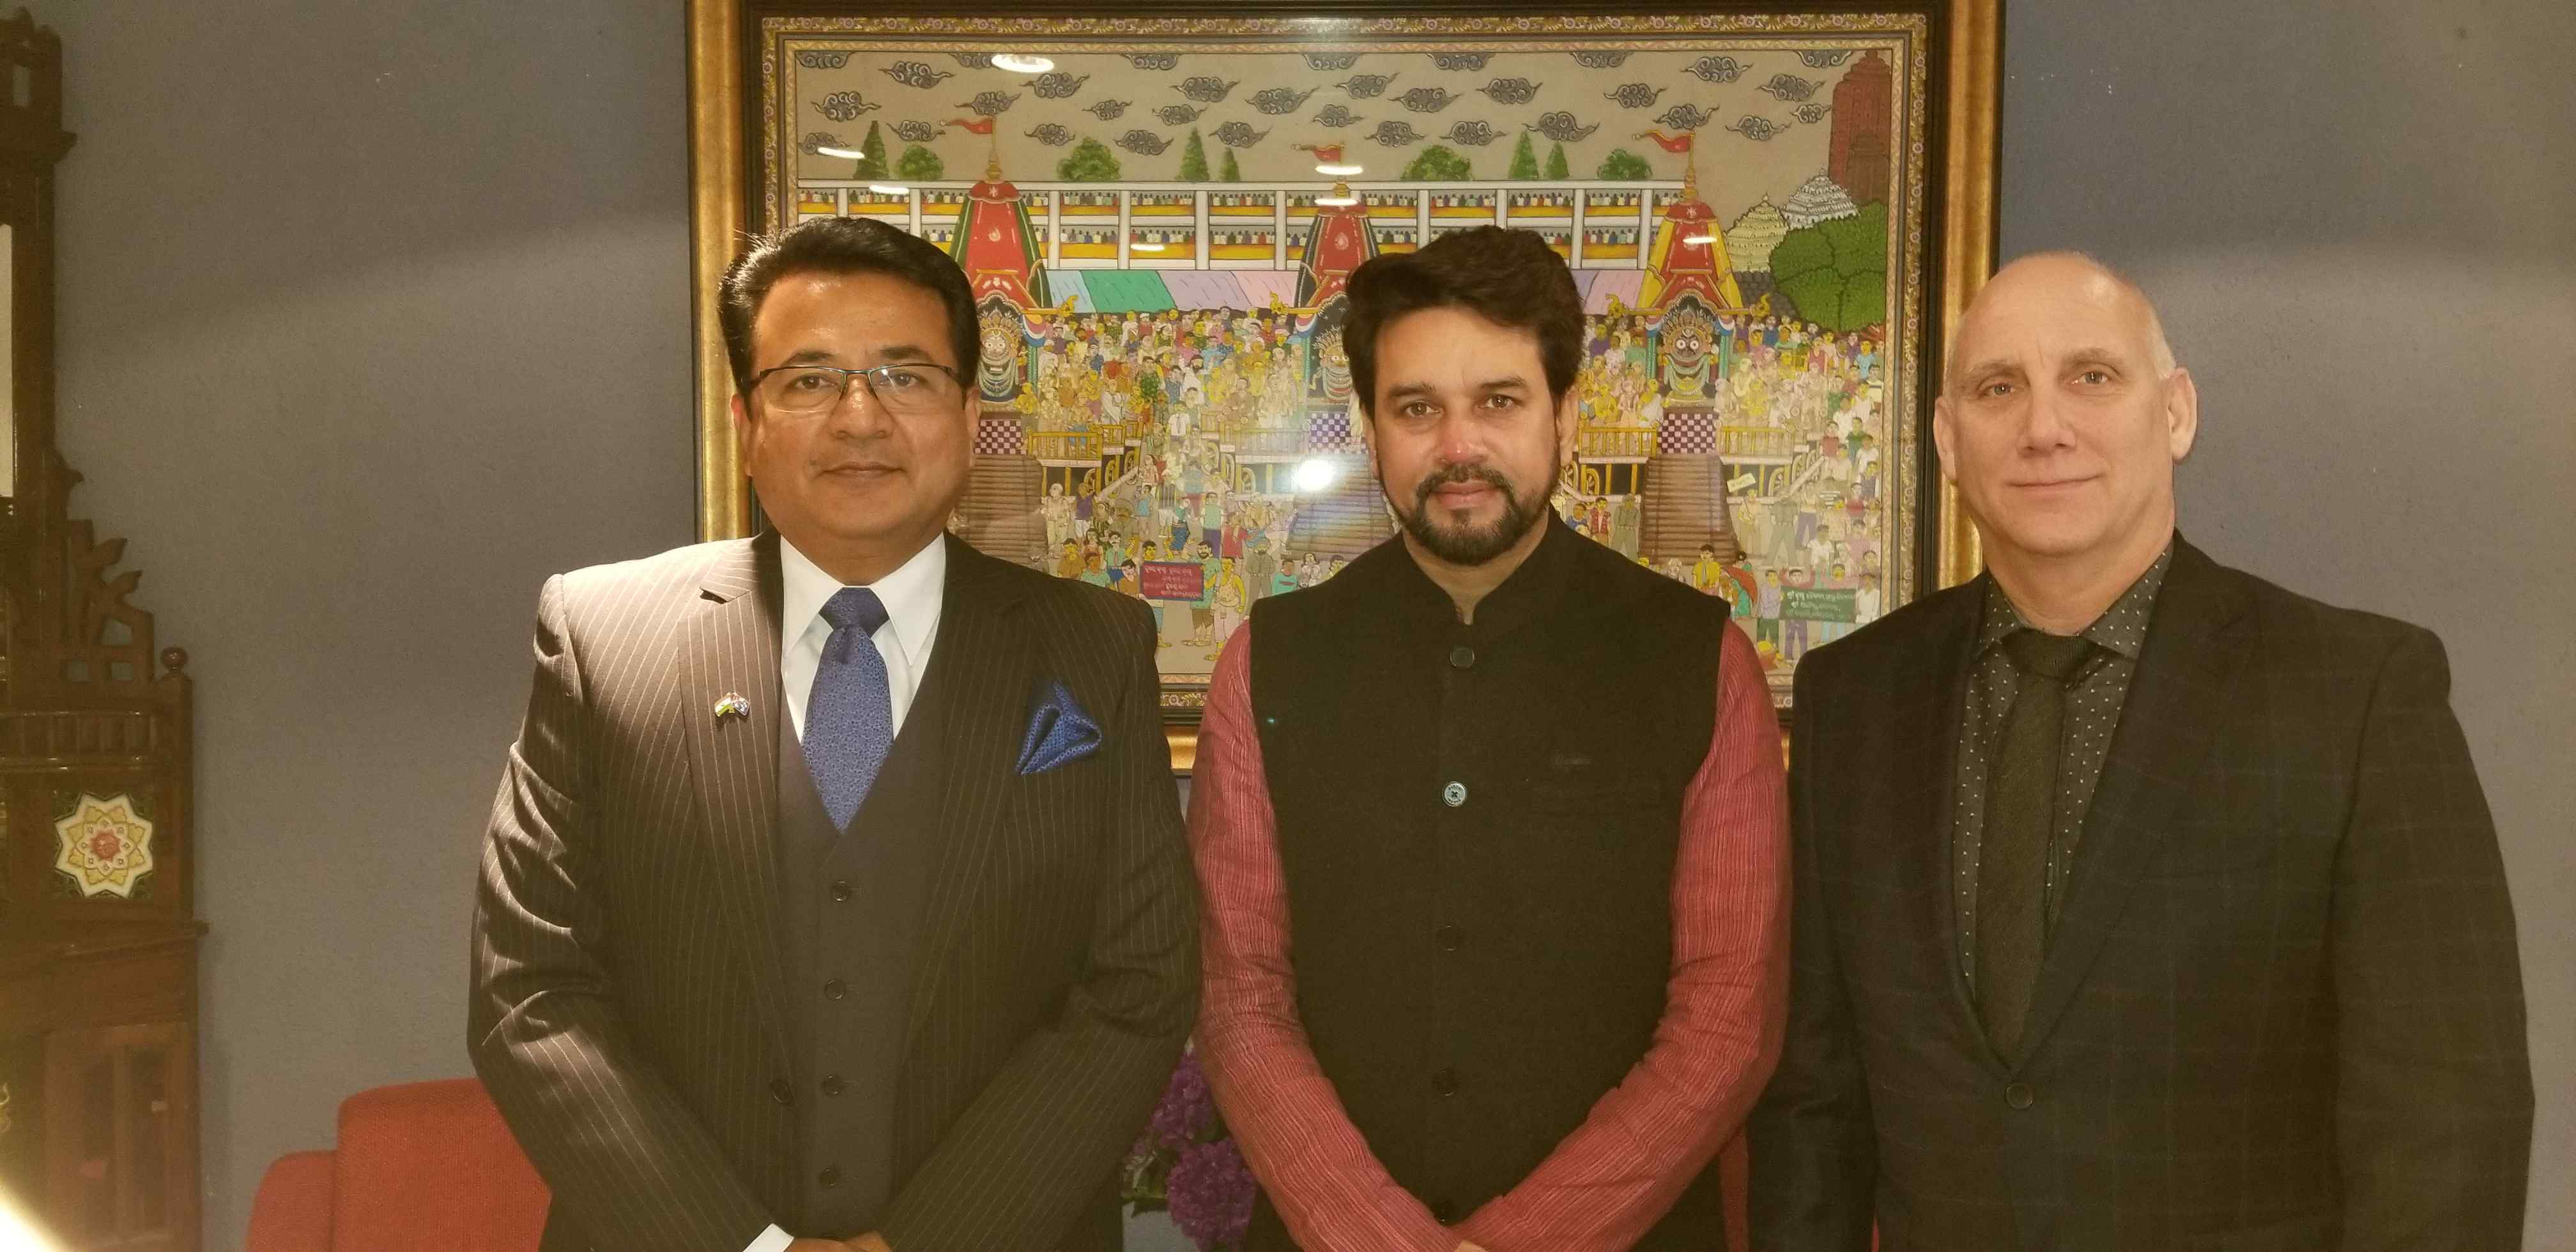 Along with IAIE advisor Dale Sheehan with Hon Minister of State for Finance and  Corporate Affairs Sri Anurag Thakur